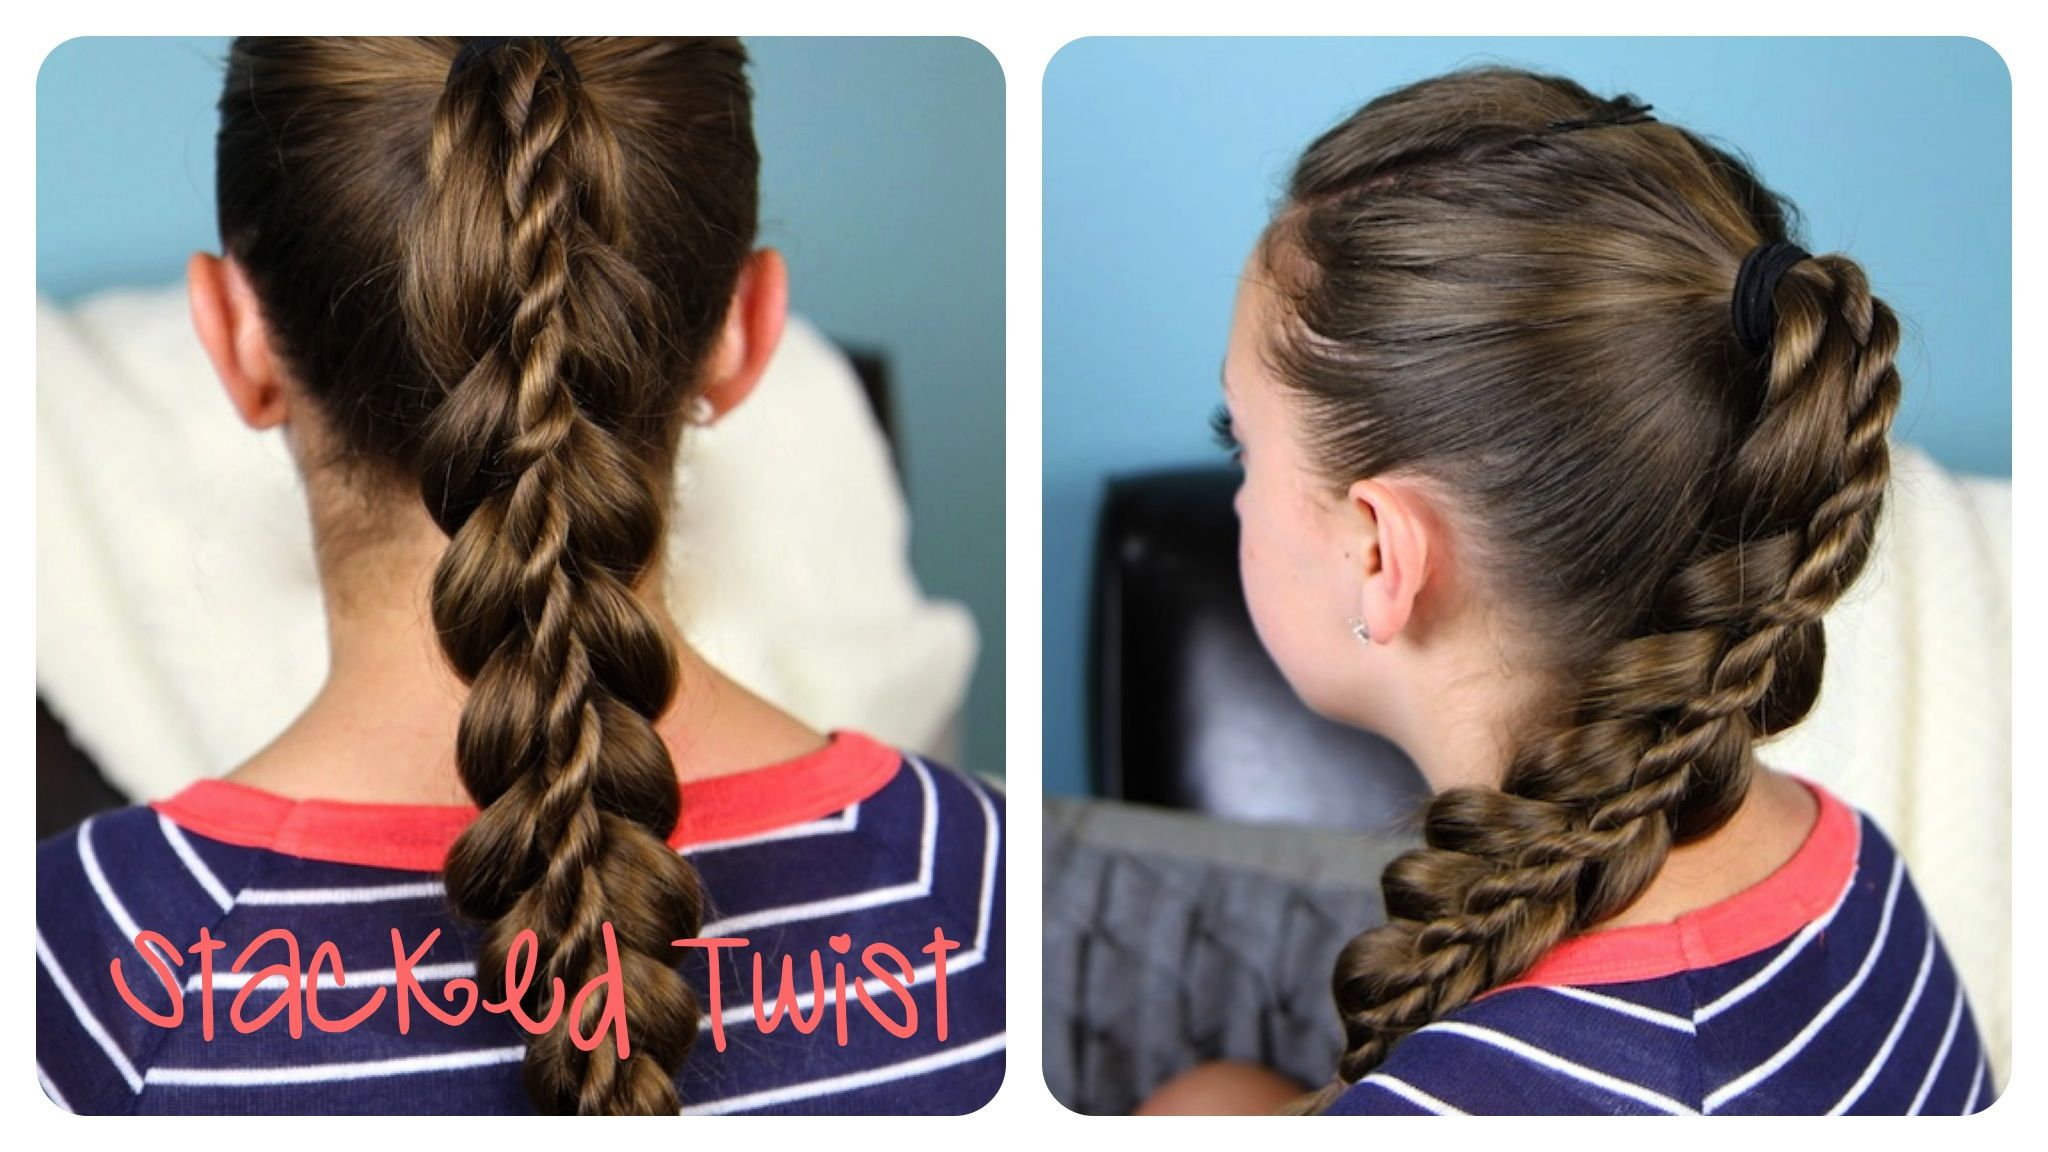 Cute Braid Hairstyles Interesting Rope Braids  Cute Girls Hairstyles  Page 2  Cool Hairstyles